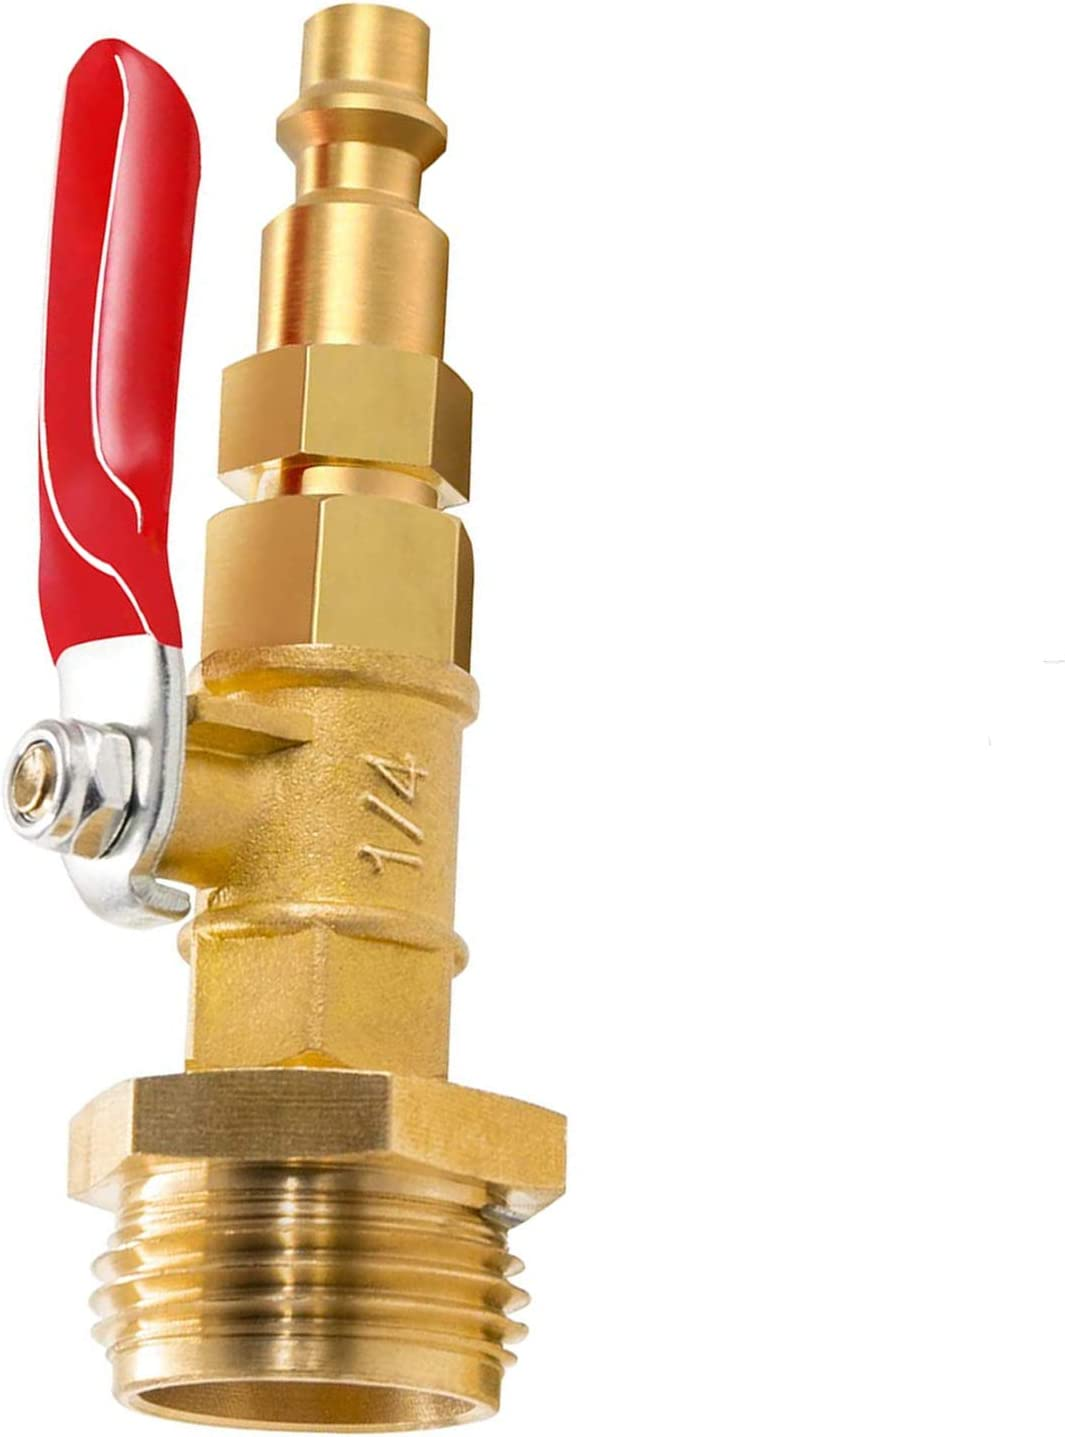 Winterize Blowout Adapter with 1/4 Inch Male Quick Connect Plug and 3/4 Inch Male GHT Thread, Brass Quick Fitting with Ball Valve for Blowing Out Water to Winterize Garden Hose, Sprinkler Systems